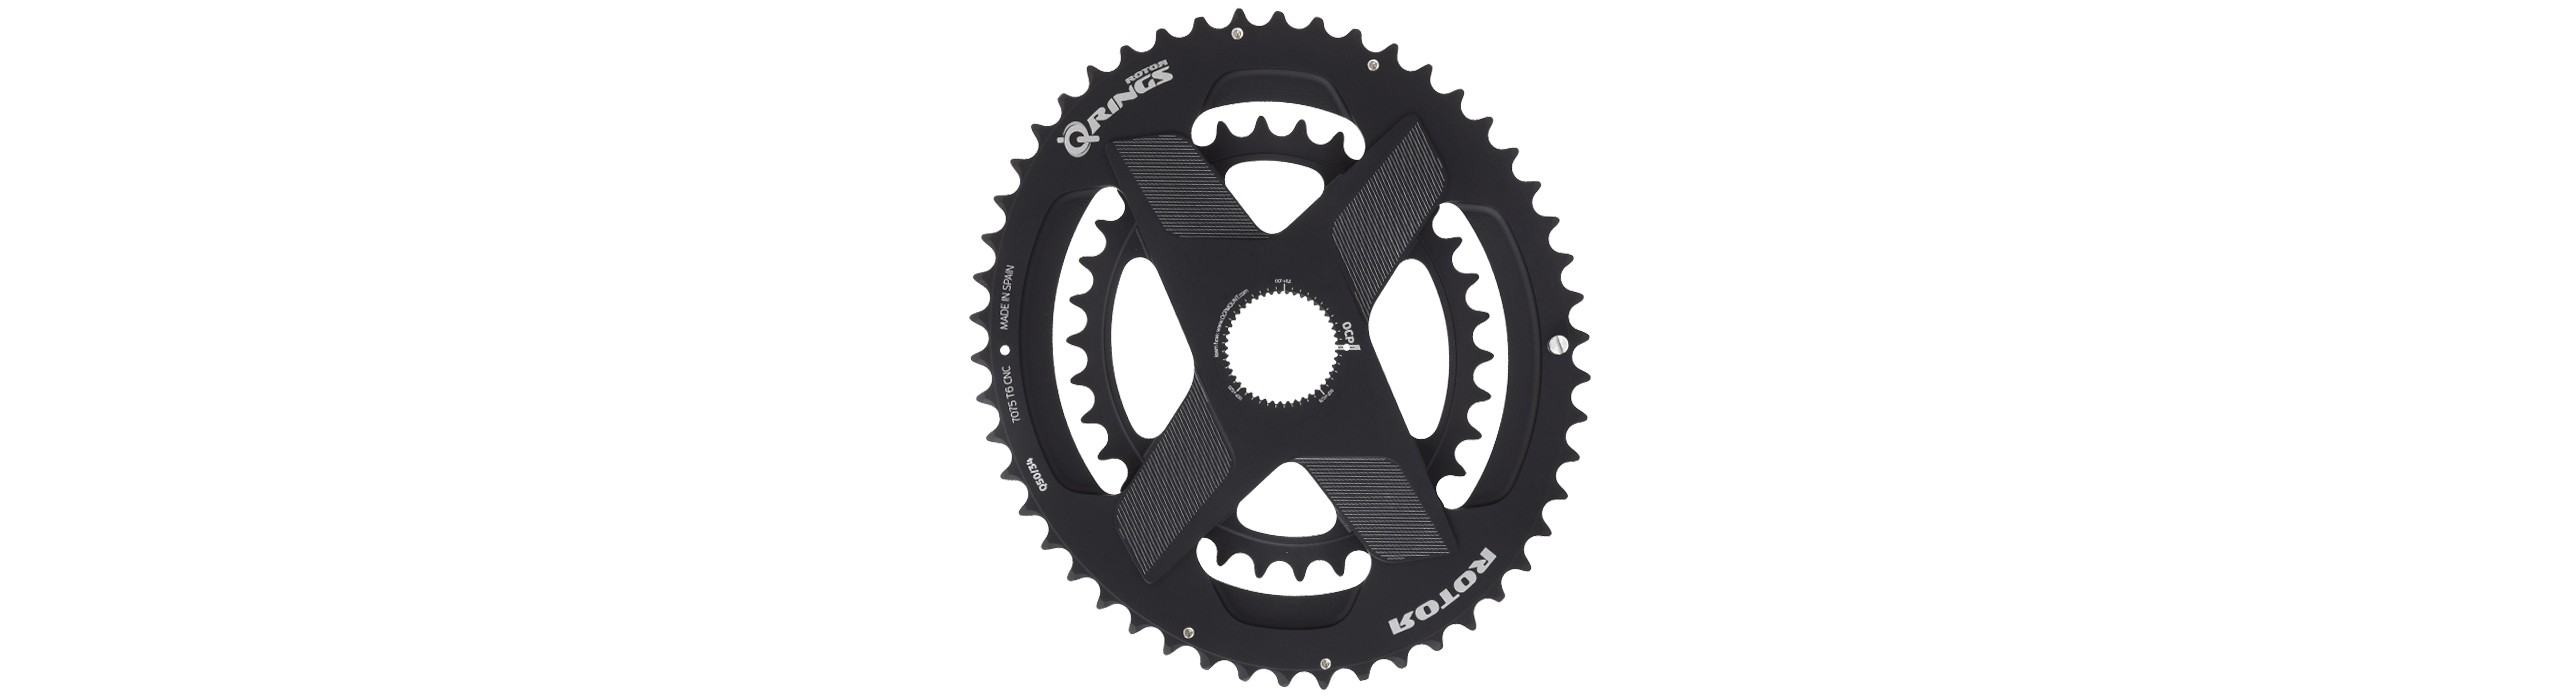 Q RINGS DM Oval Chainrings 2X